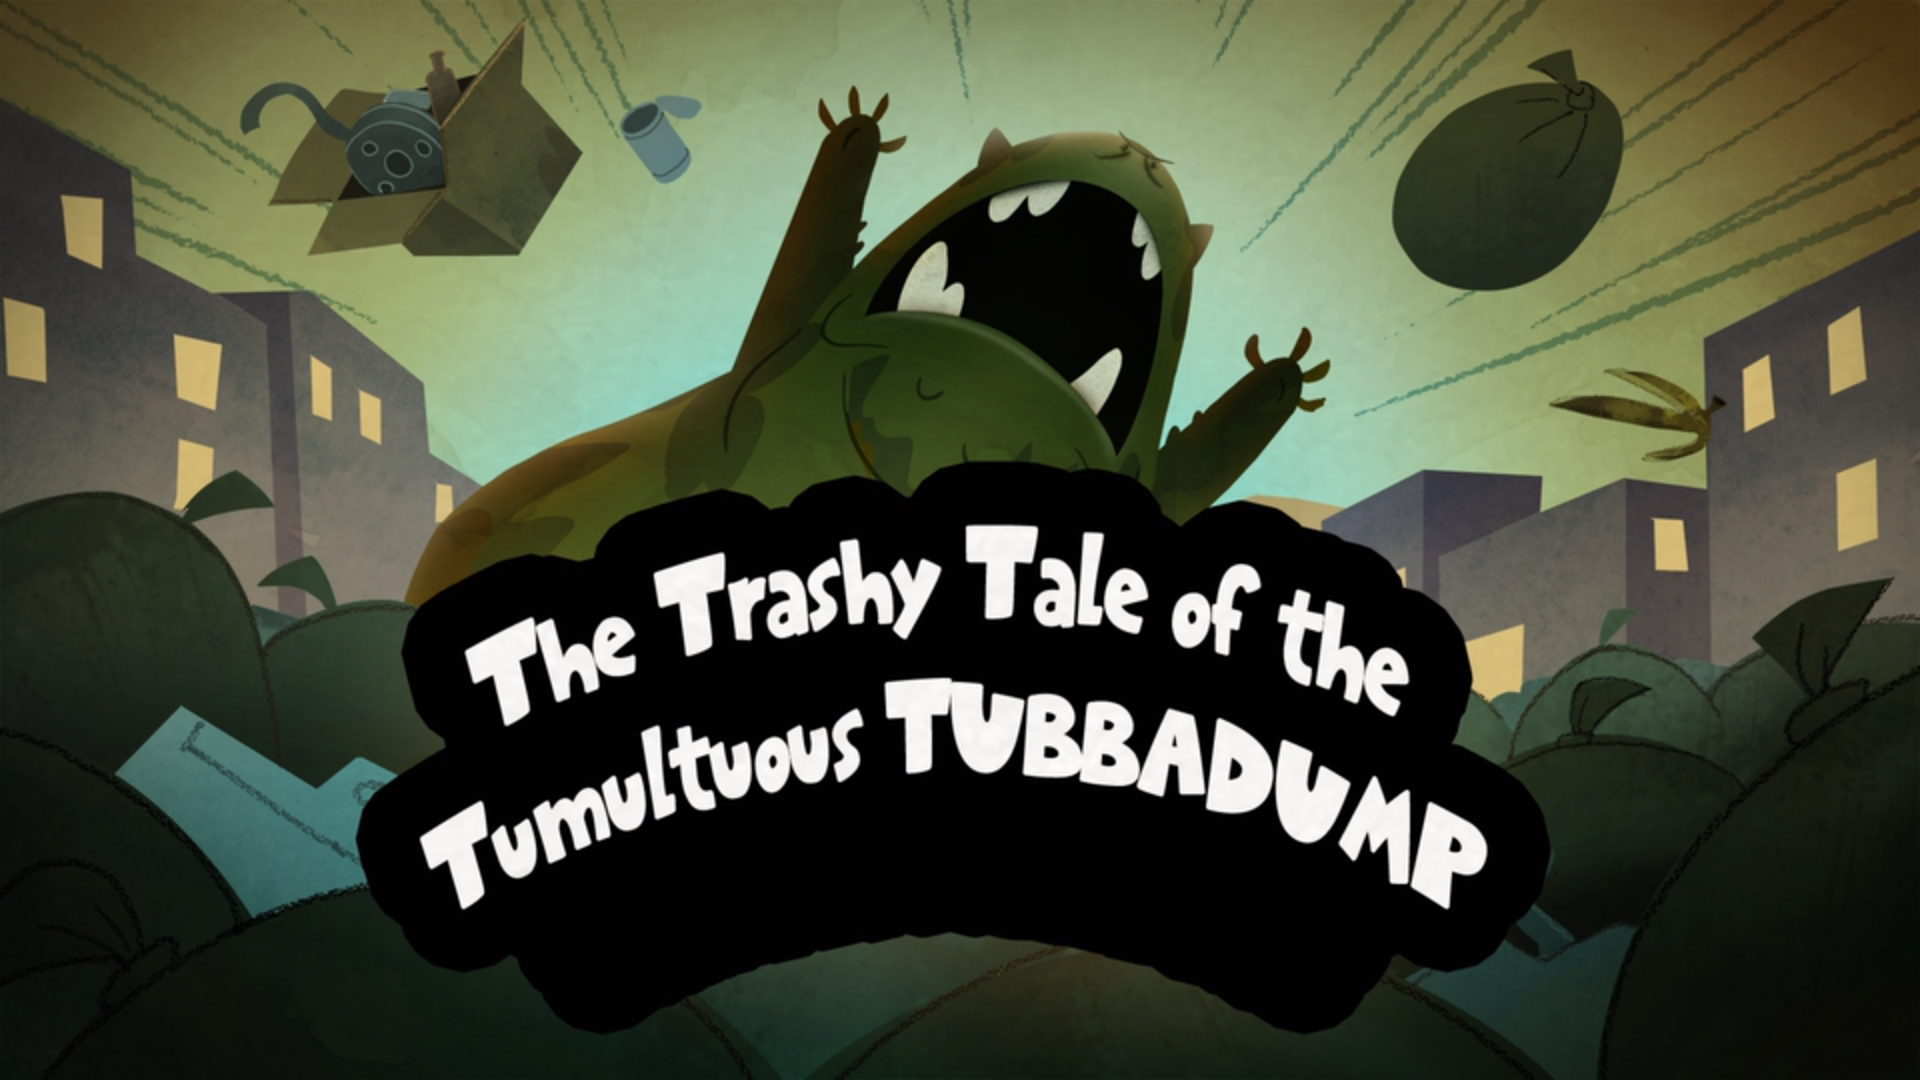 The Trashy Tale of the Tumultuous Tubbadump